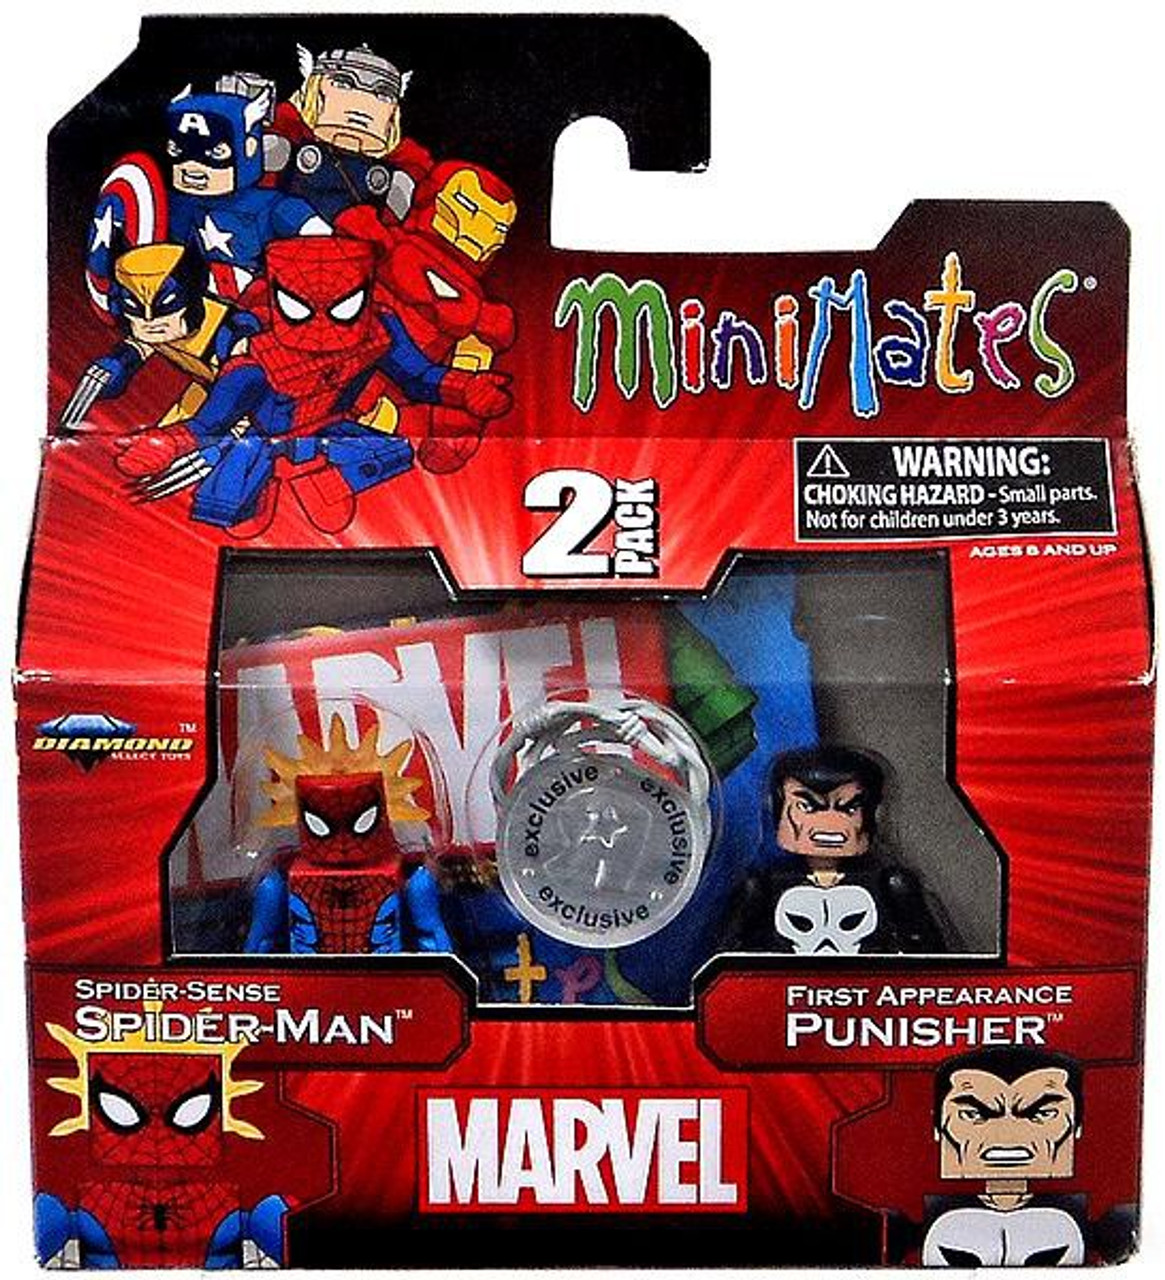 Marvel Minimates Spider-Sense Spider-Man & First Appearance Punisher Exclusive Minifigure 2-Pack